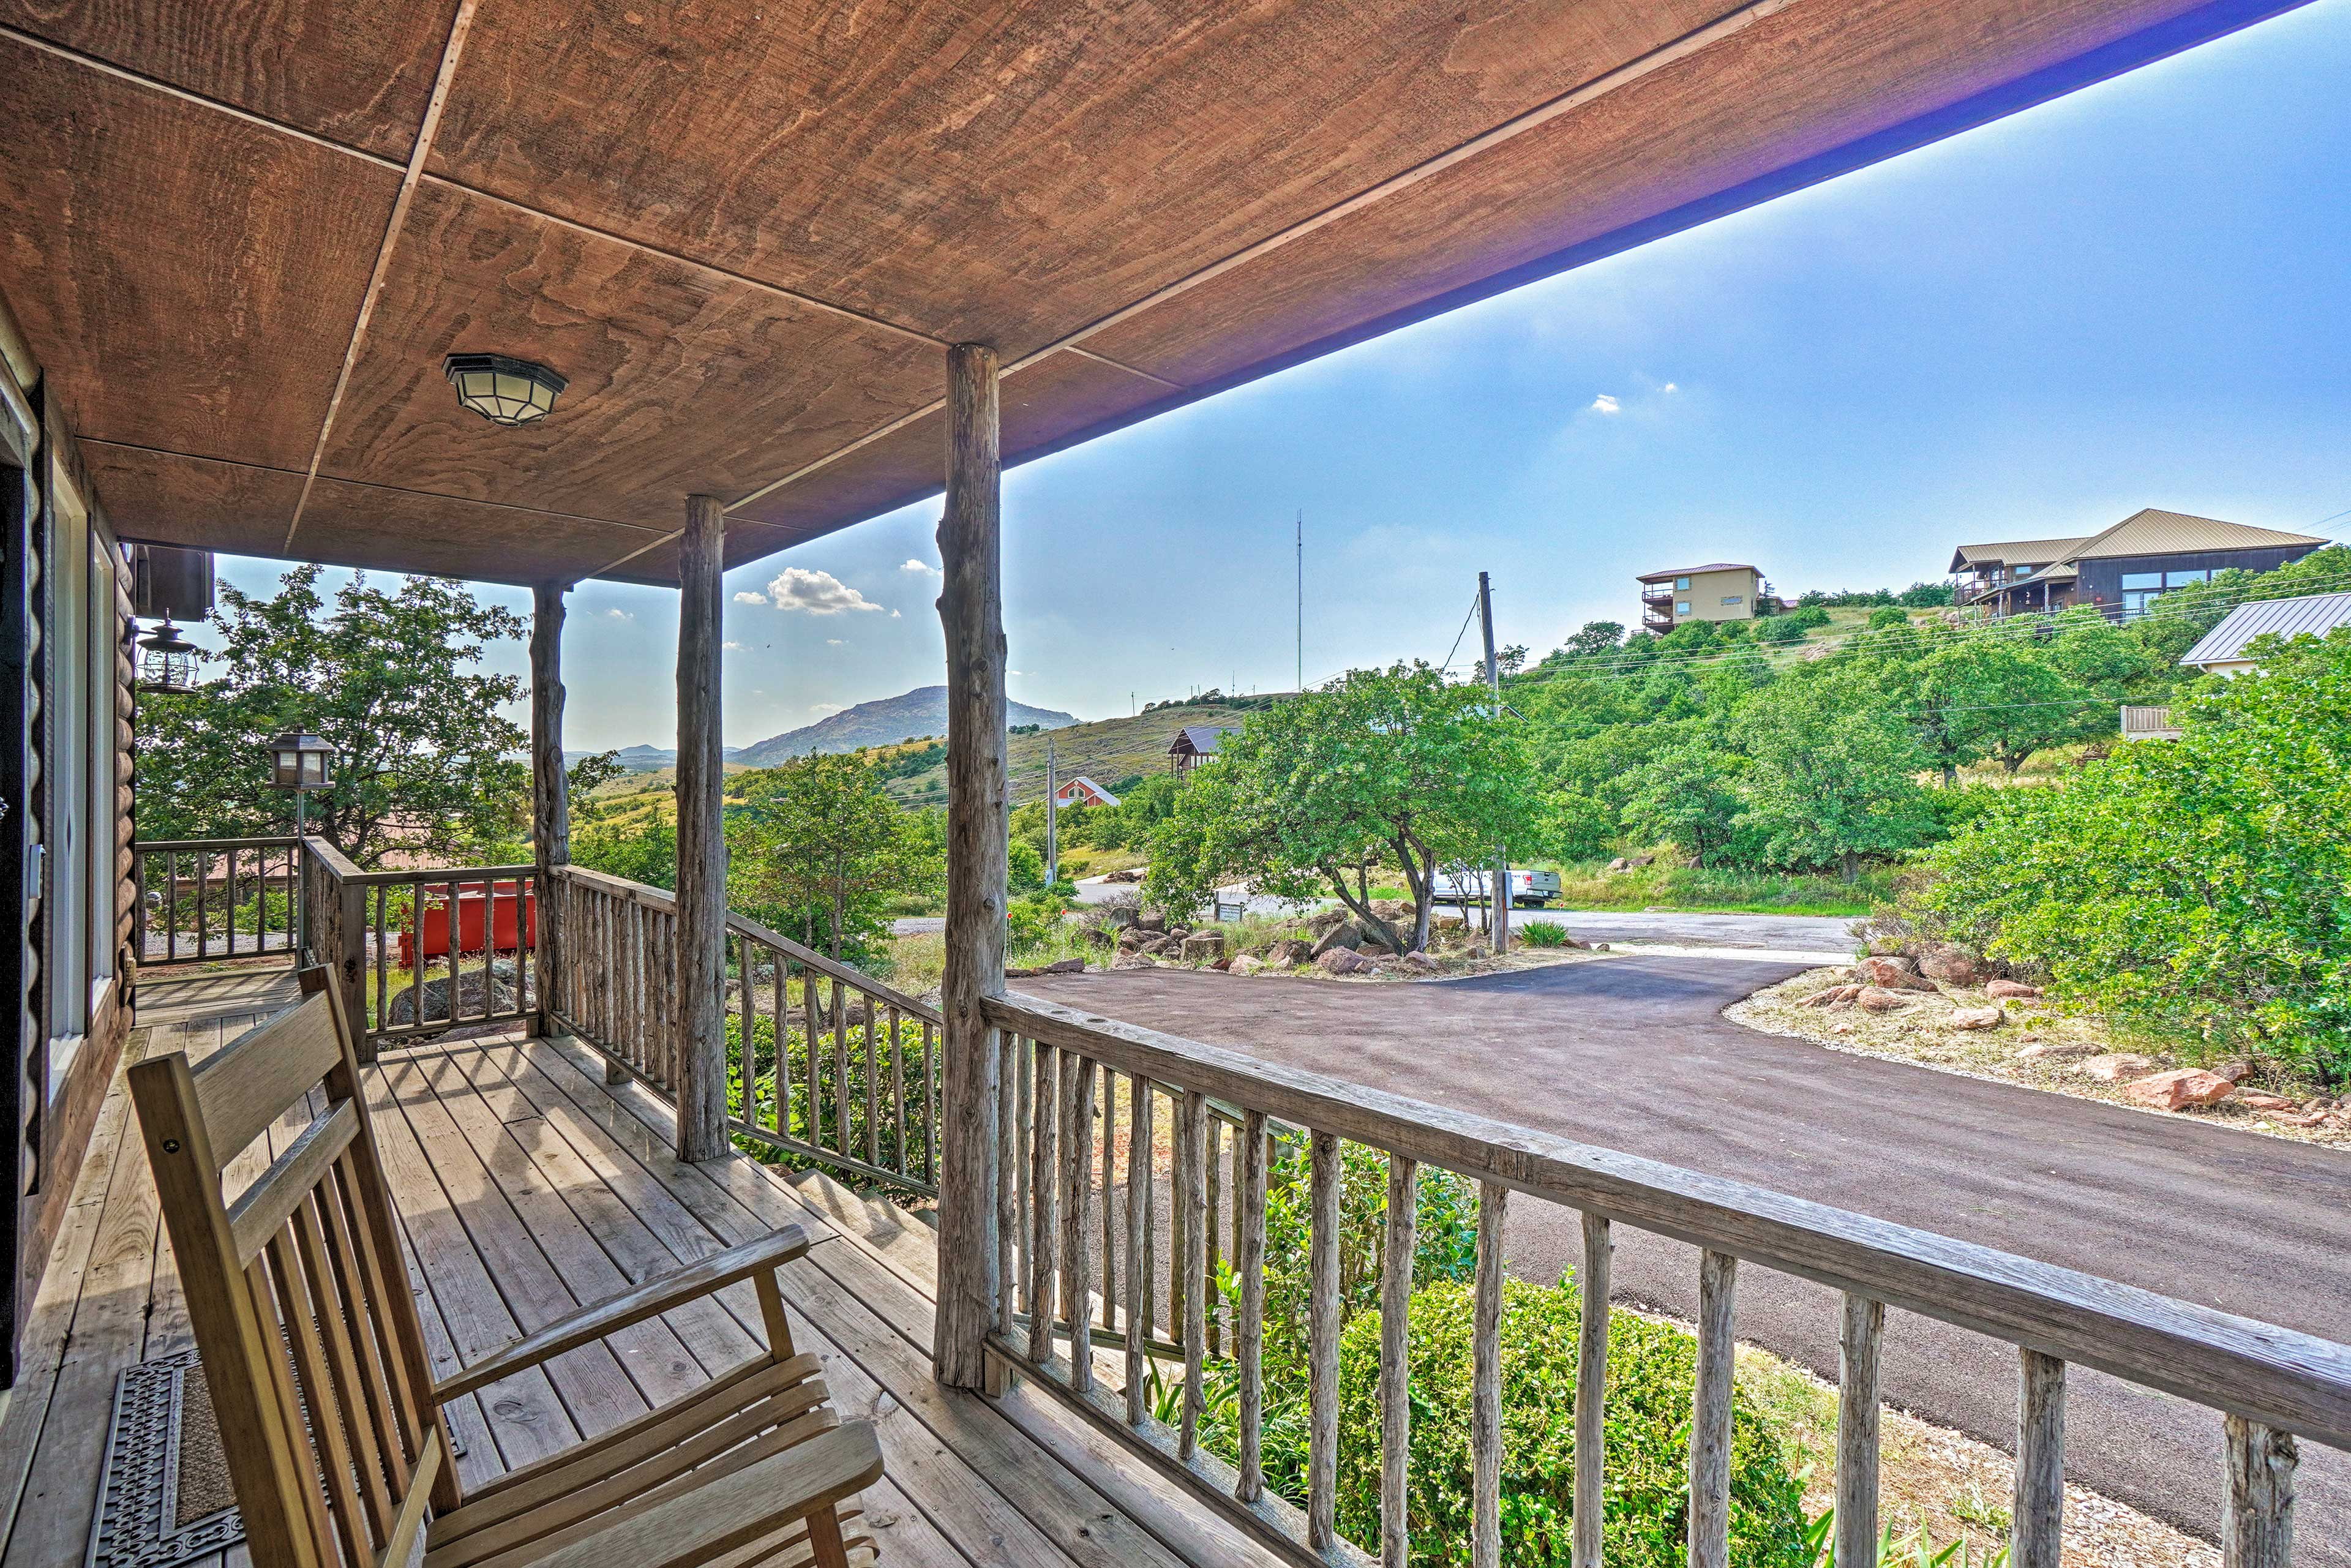 The wraparound porch is hangout worthy.